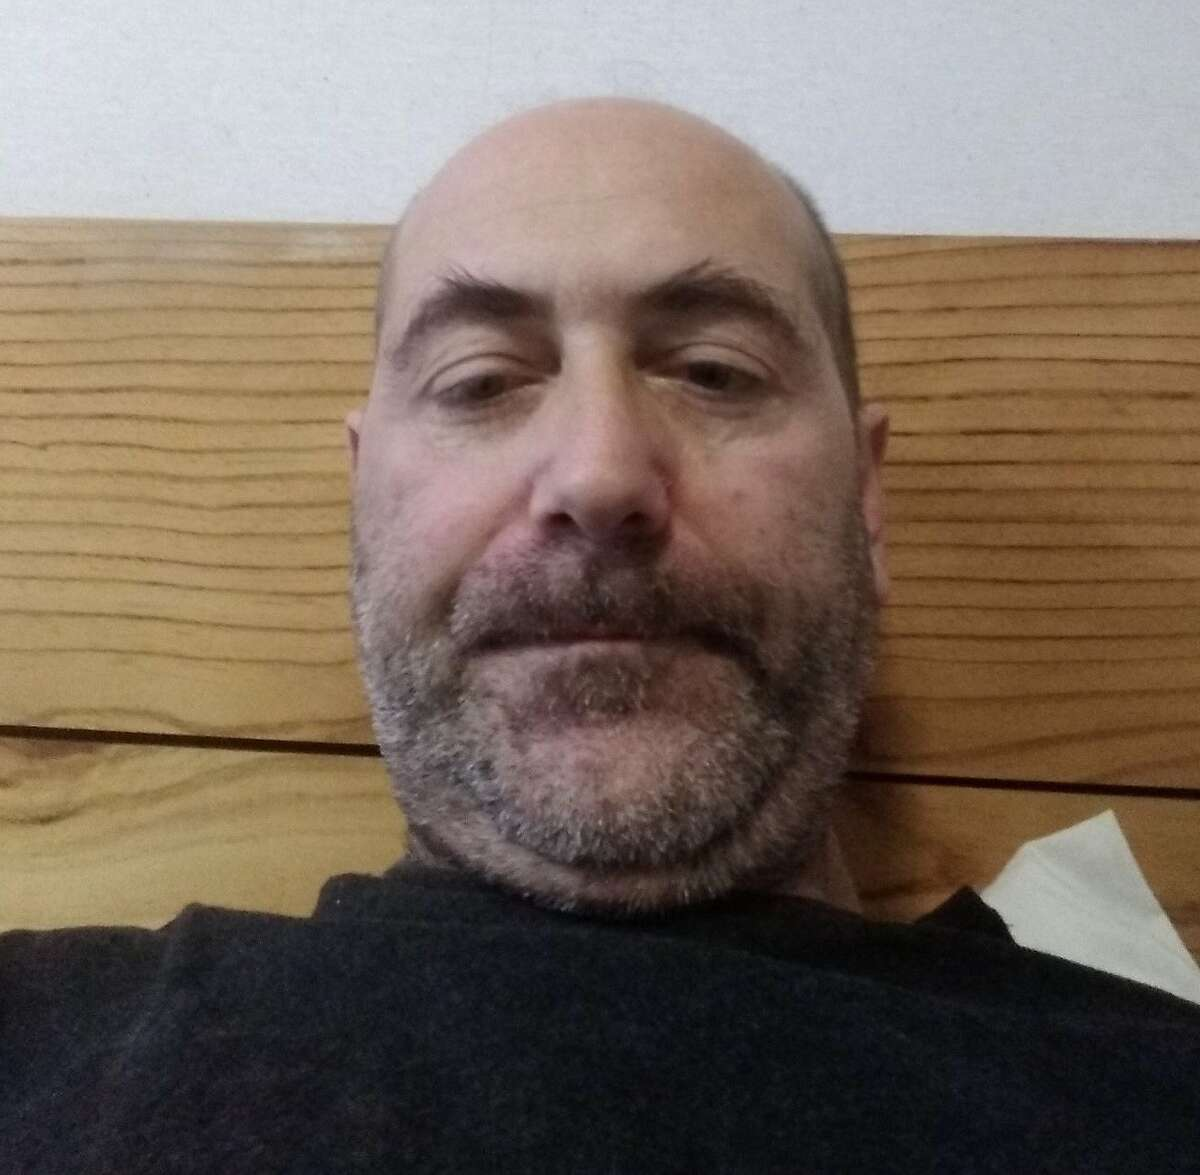 Brian McFarland, who had been staying at the Multi-Service Center South shelter before being placed in a city-provided hotel in April for isolation during the coronavirus crisis, said he appreciated the hotel room. He took this self portrait on April 17, 2020, as he lay in his hotel bed with a fever.